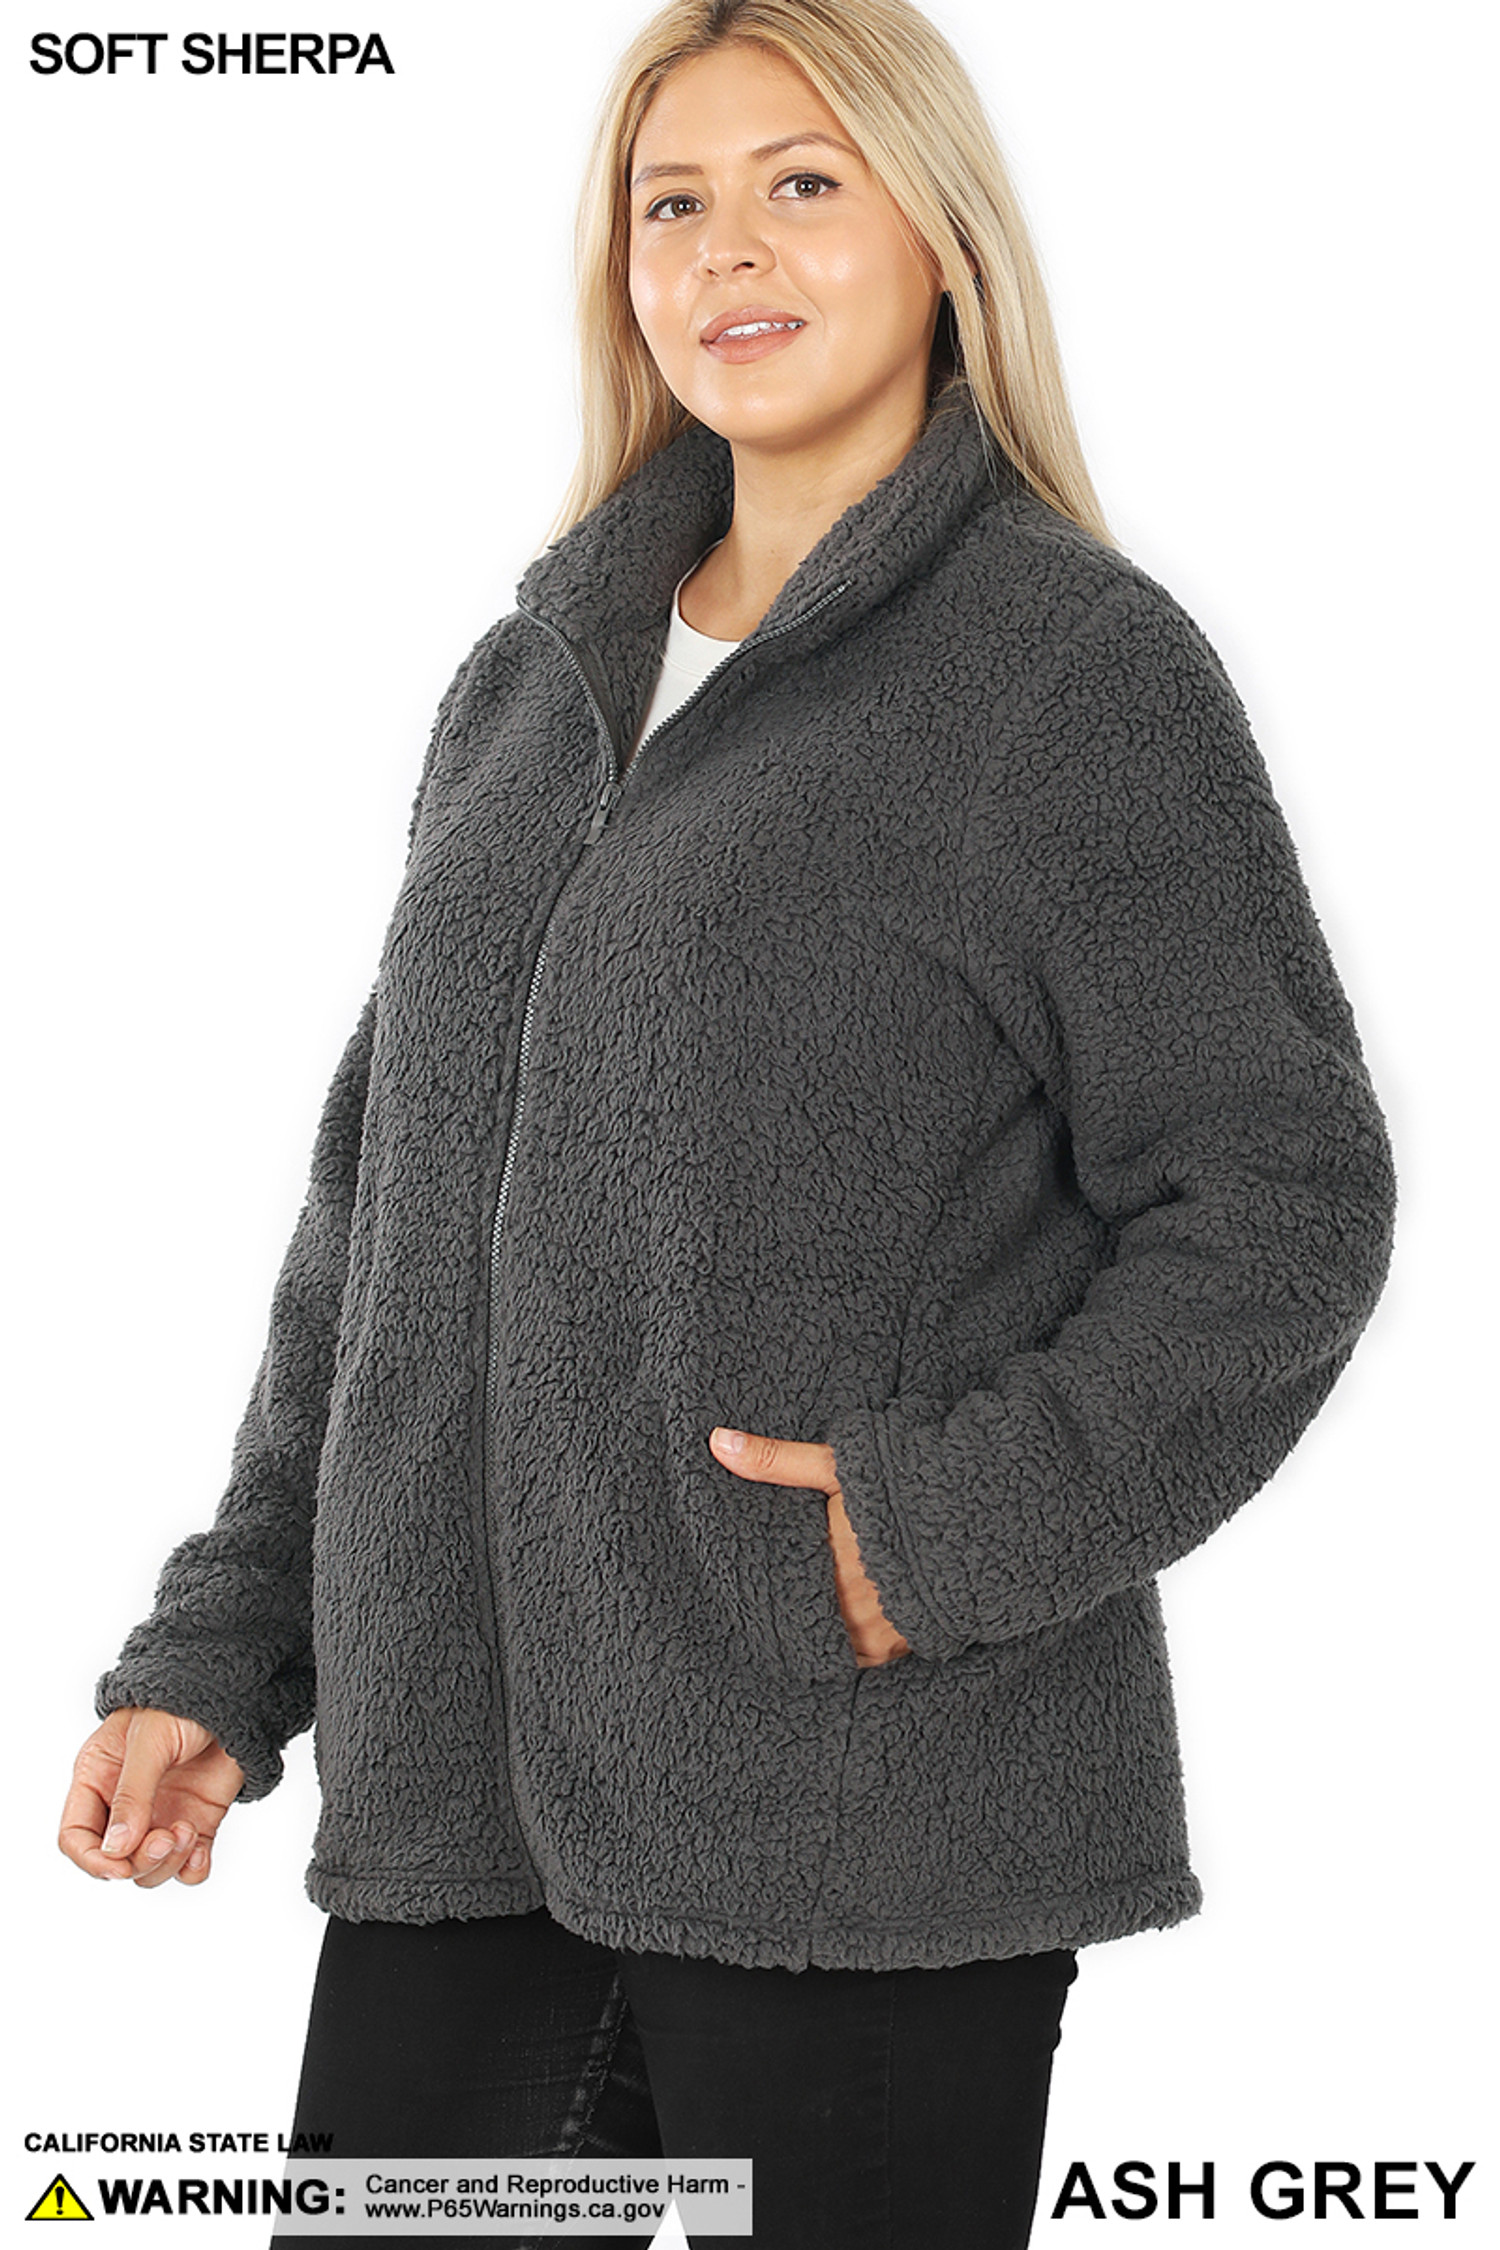 45 degree image of Ash Grey Sherpa Zip Up Plus Size Jacket with Side Pockets